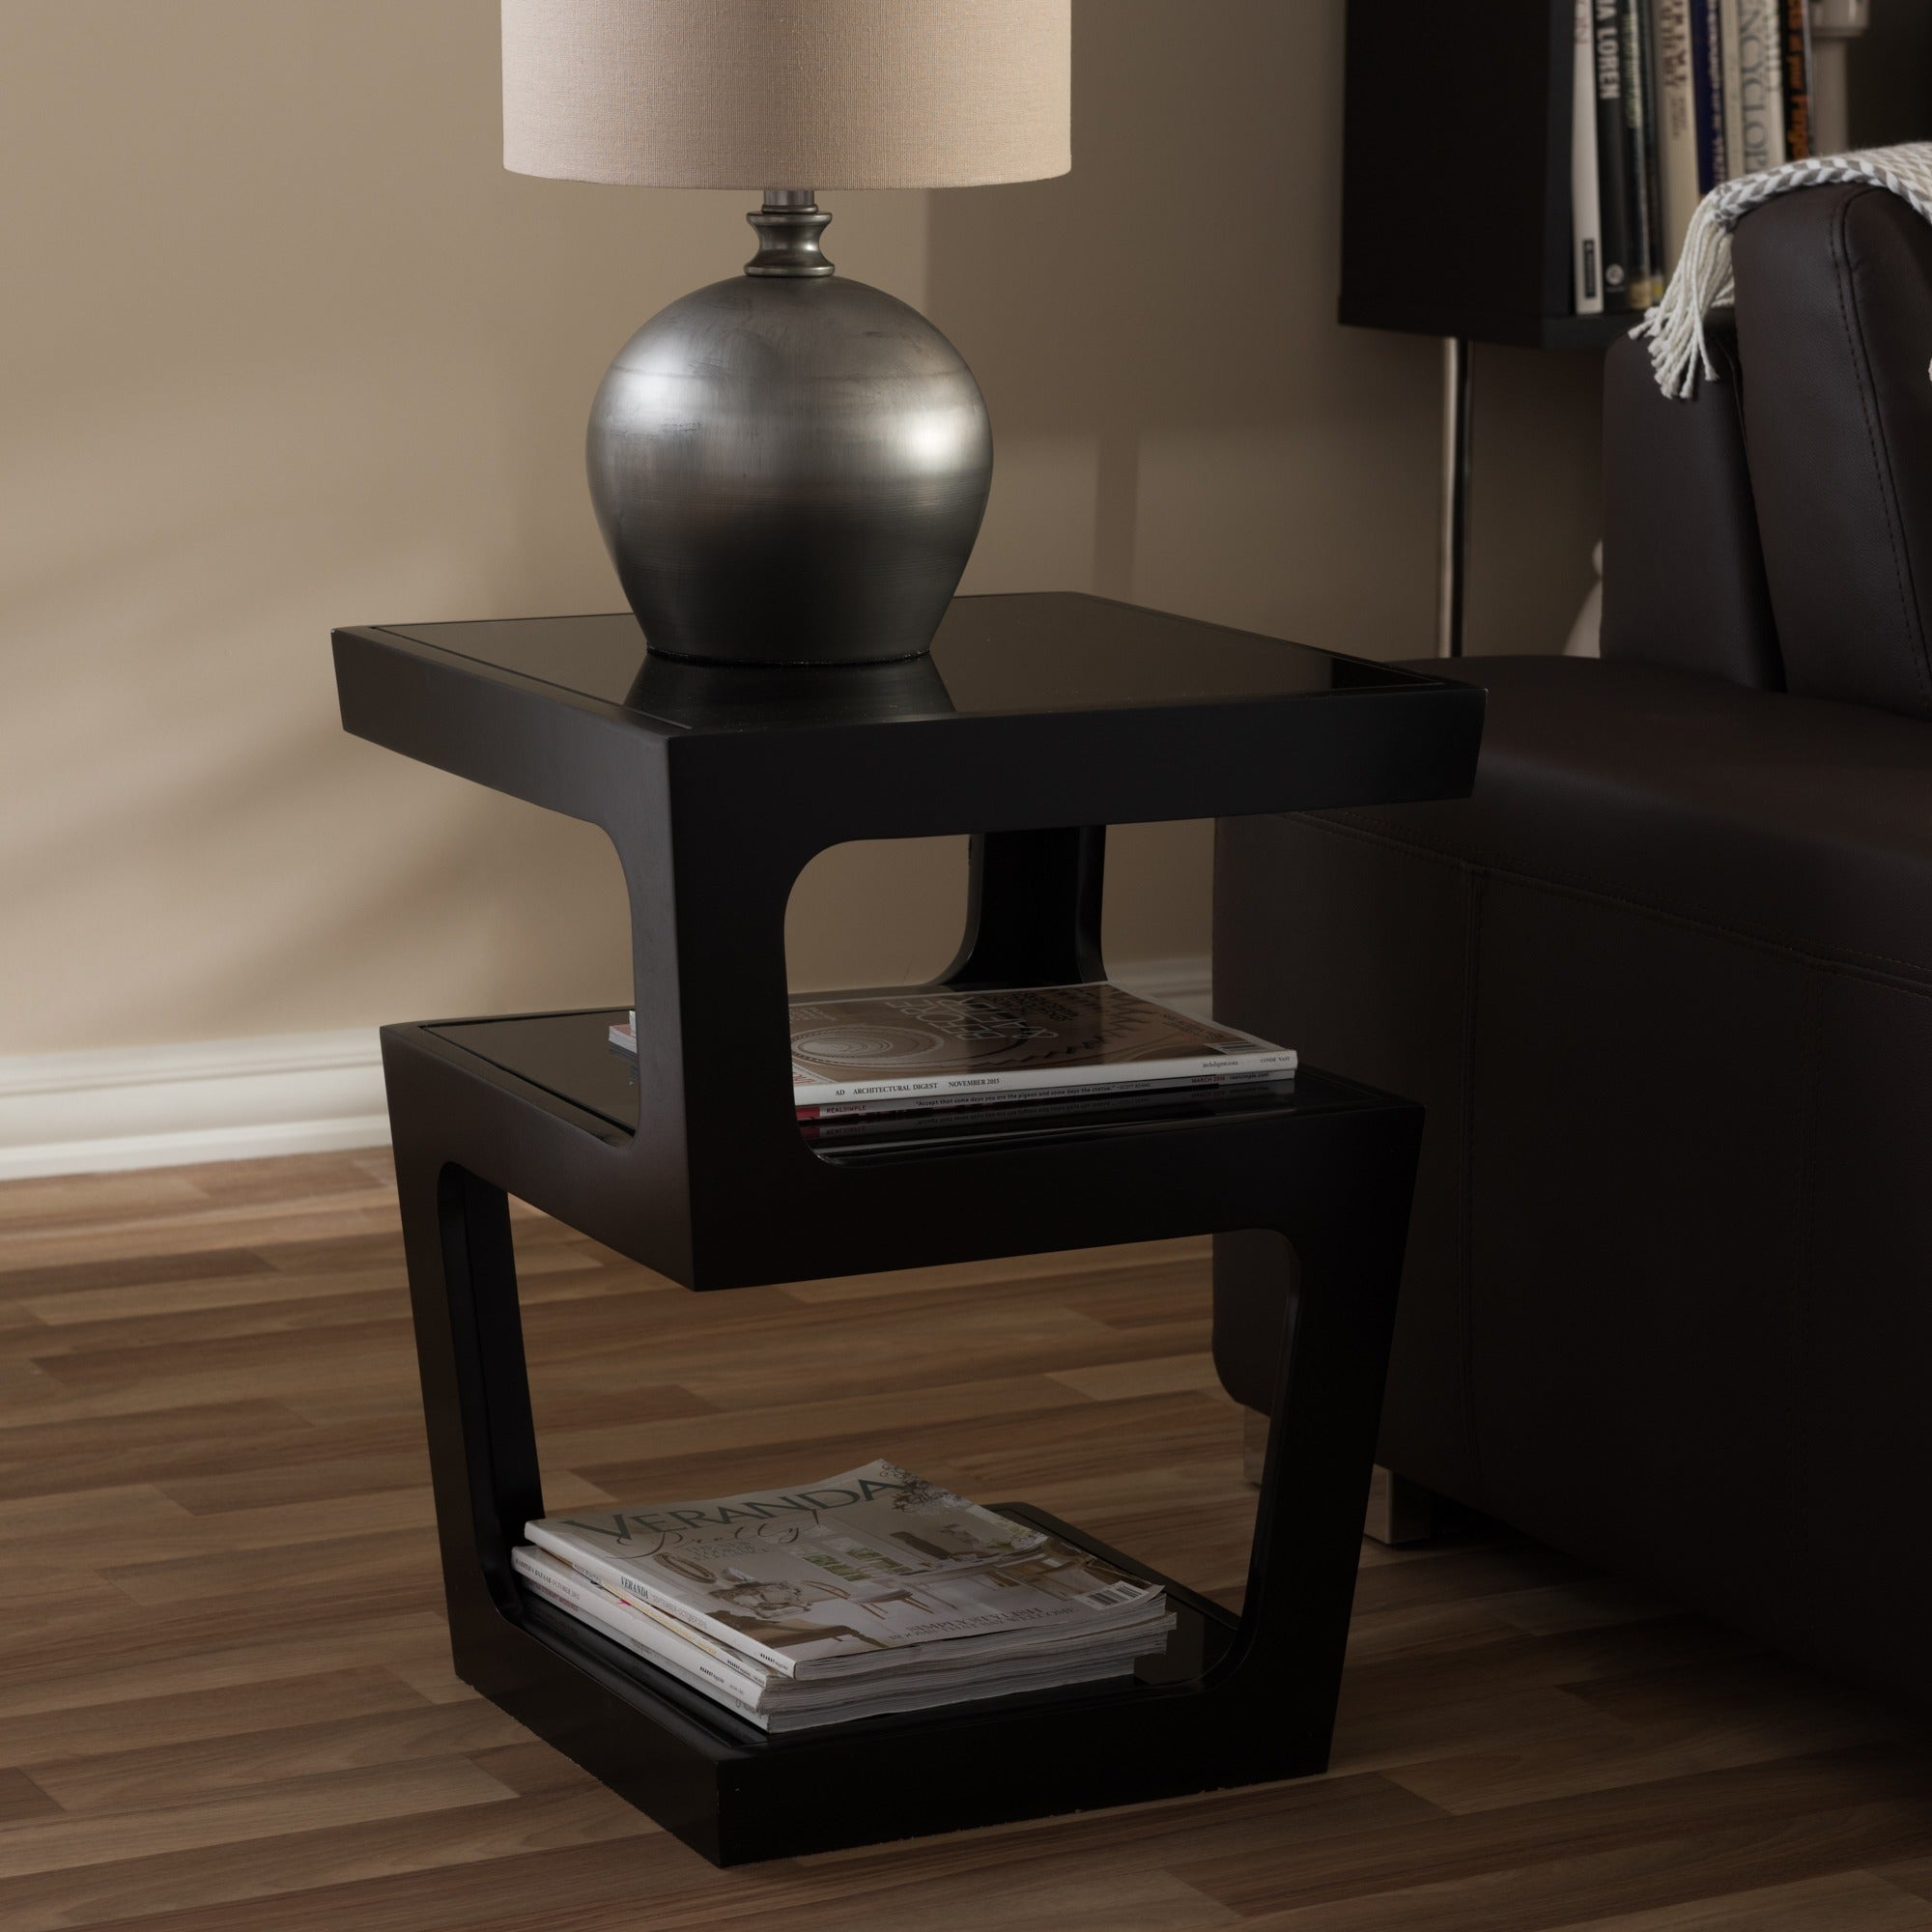 on sale f154e 84475 Clara Modern Tall Black 3-tiered End Table